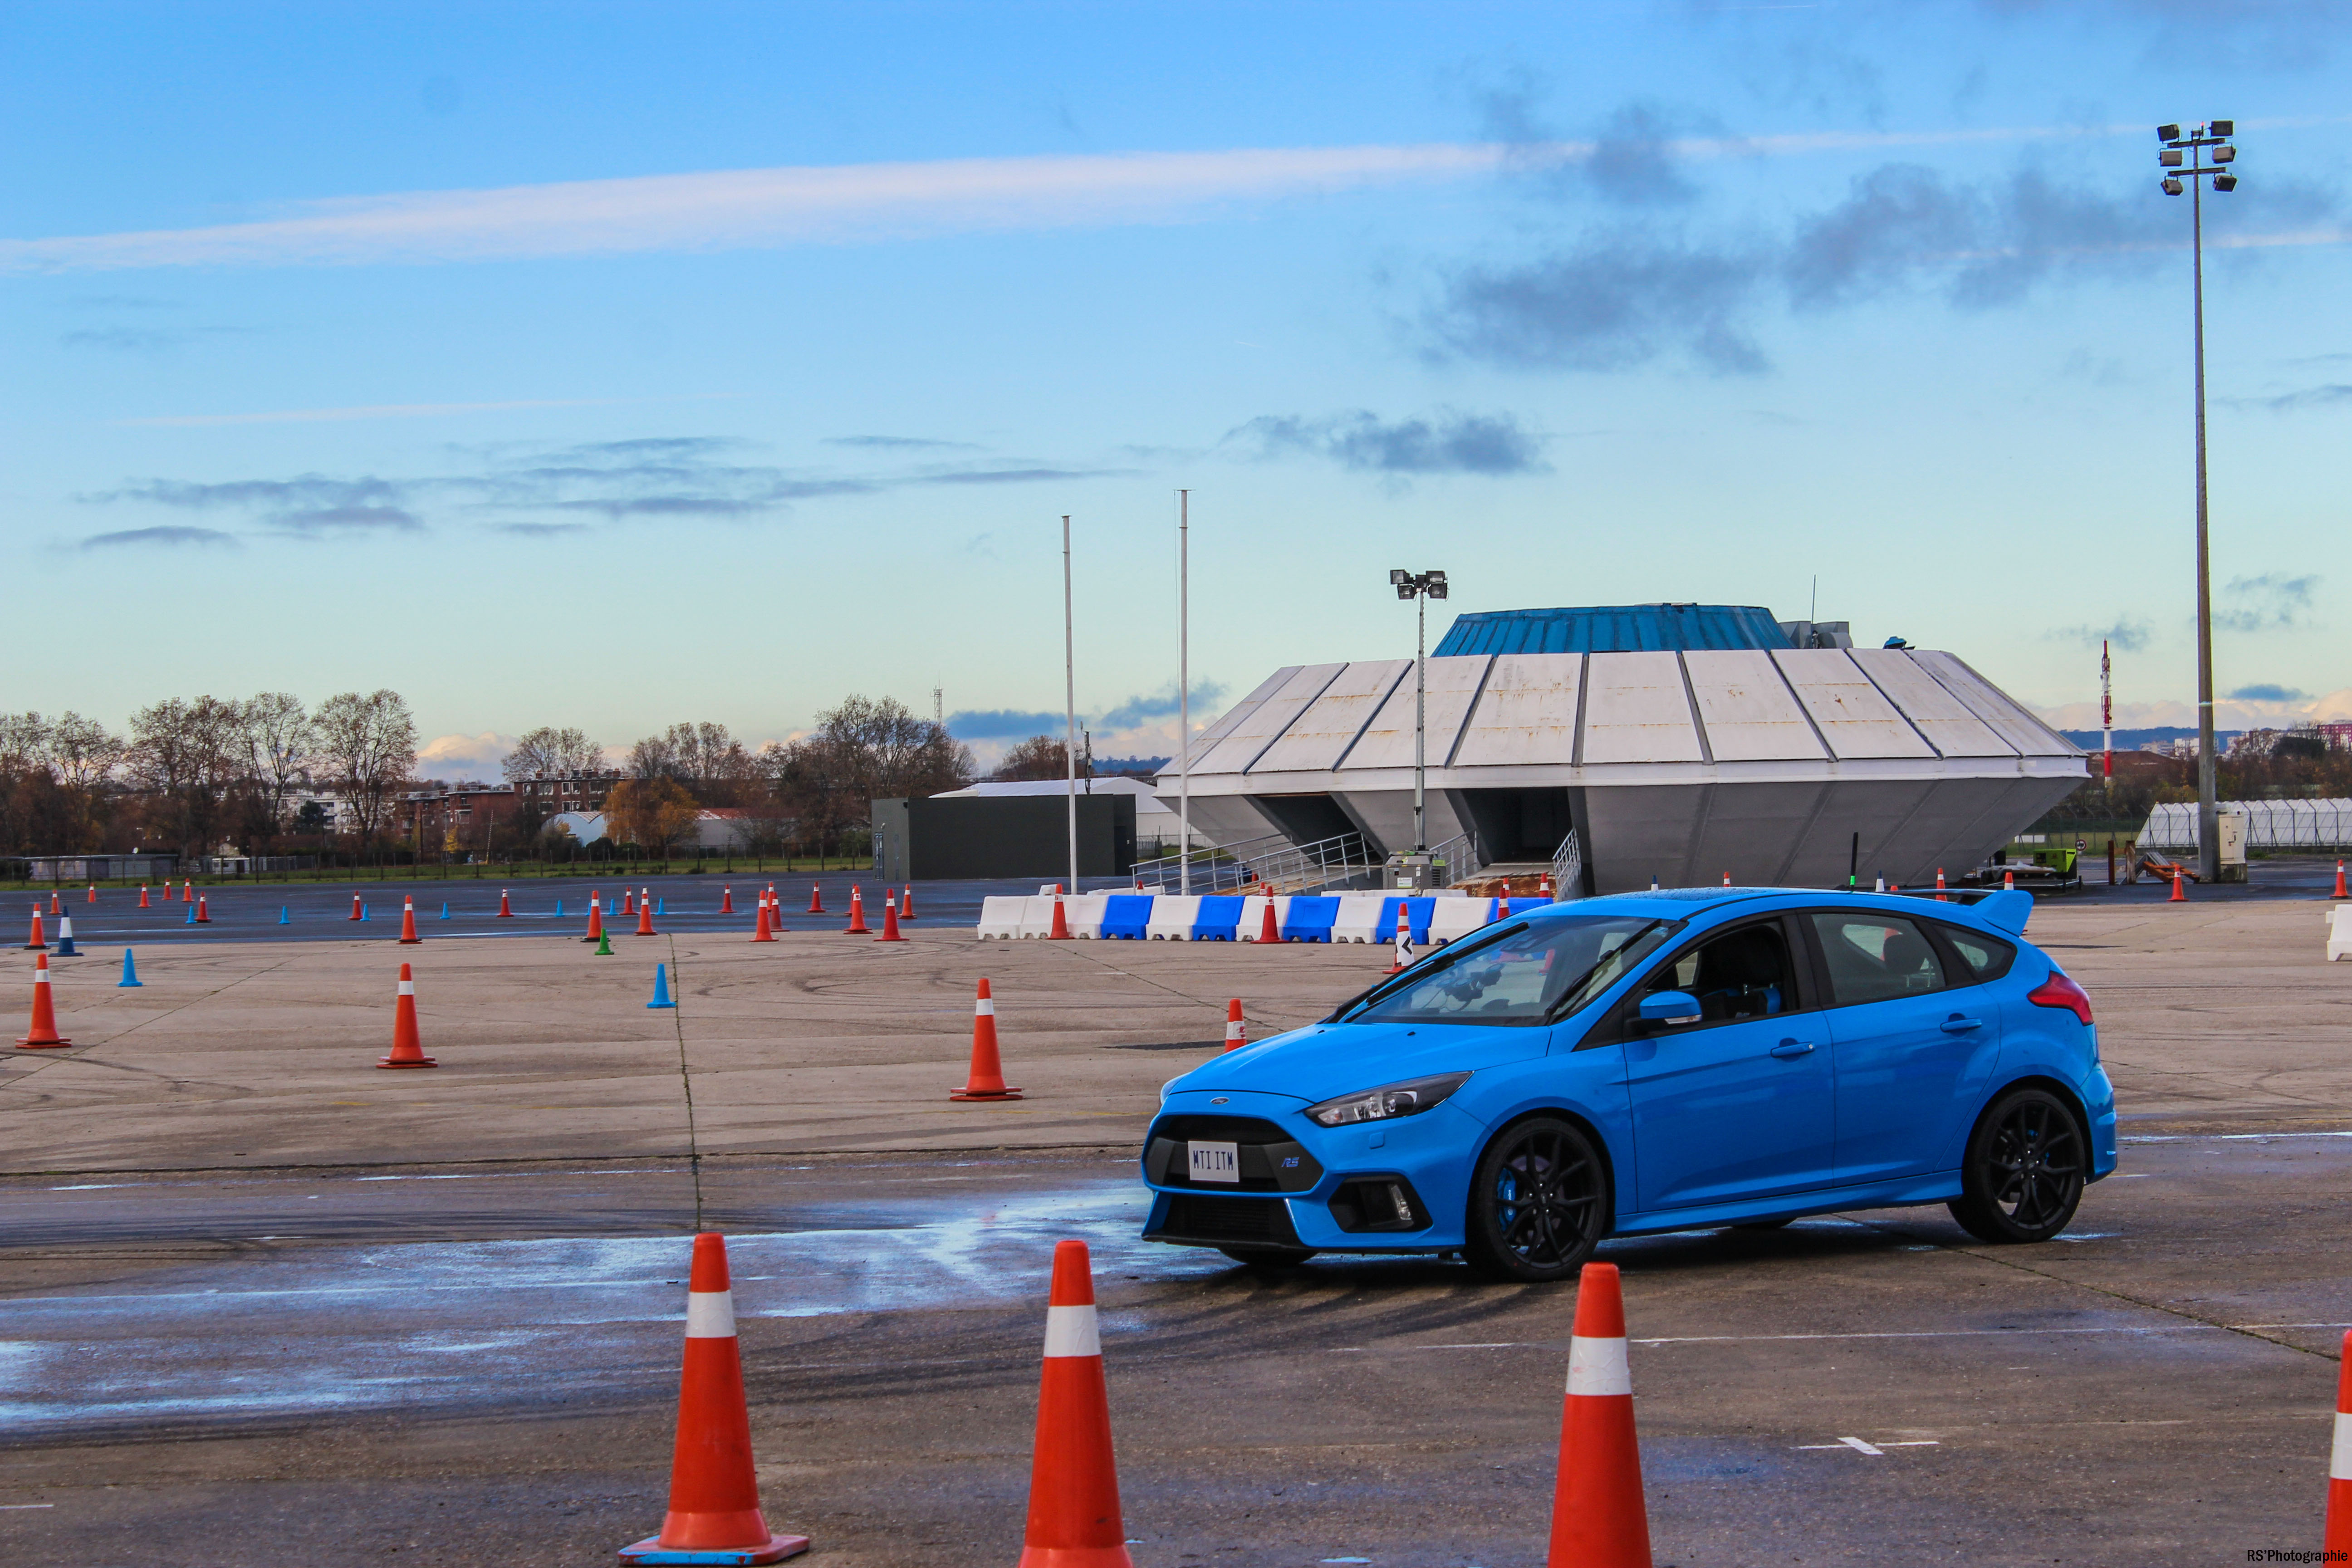 gofaster6-opération-go-faster-ford-focus-rs-avant-front-Arnaud Demasier-RSPhotographie